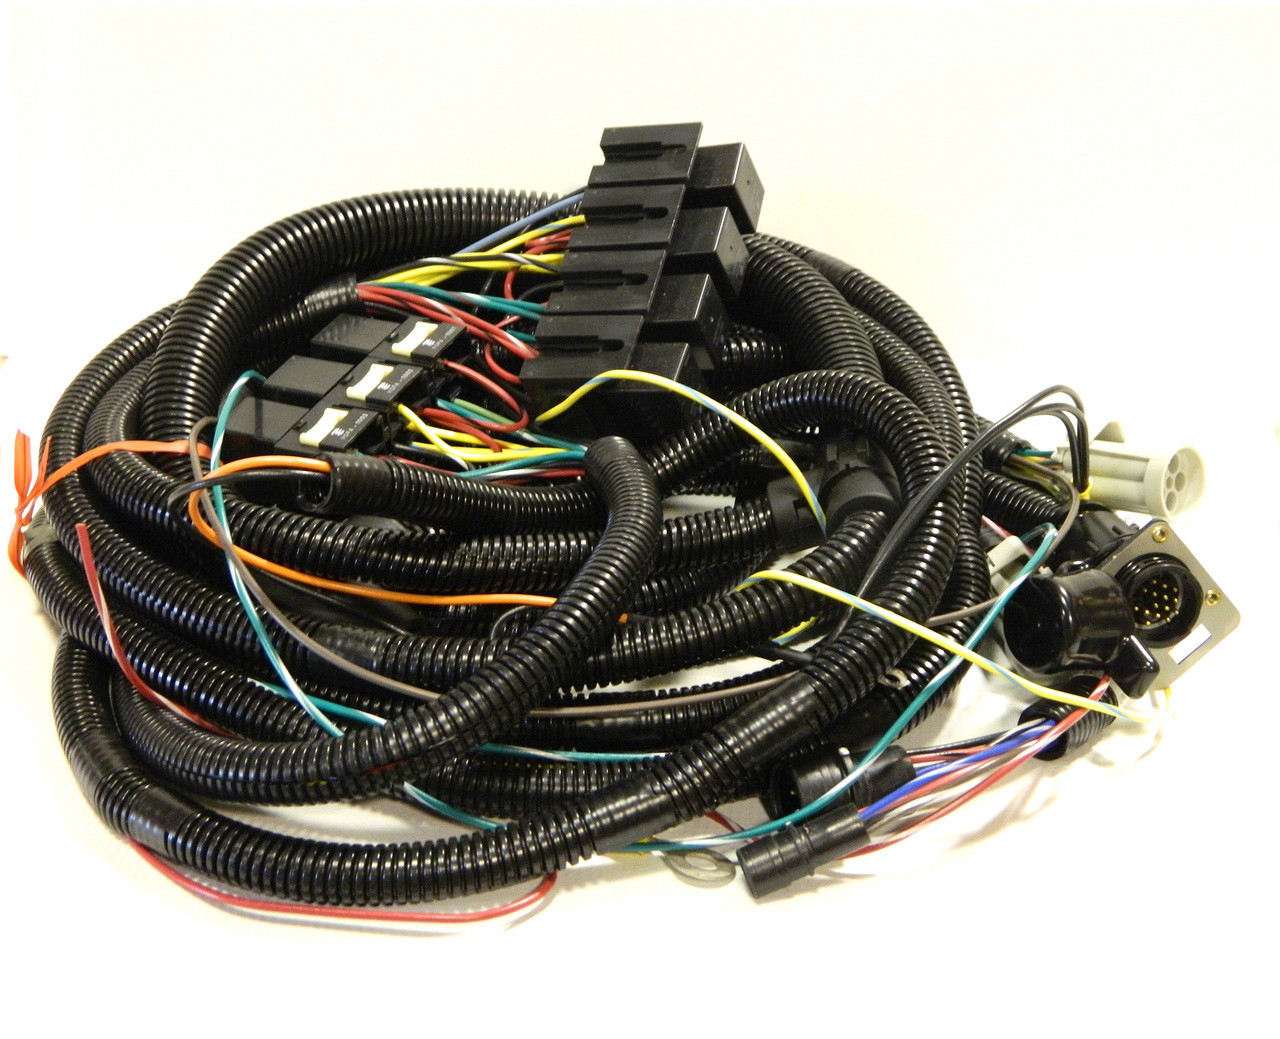 Hiniker Wiring Harness Reinvent Your Diagram Snow Plow Hn38813097 Underhood With 16 Pin Cpc Rh Crofttrailer Com 6 Function